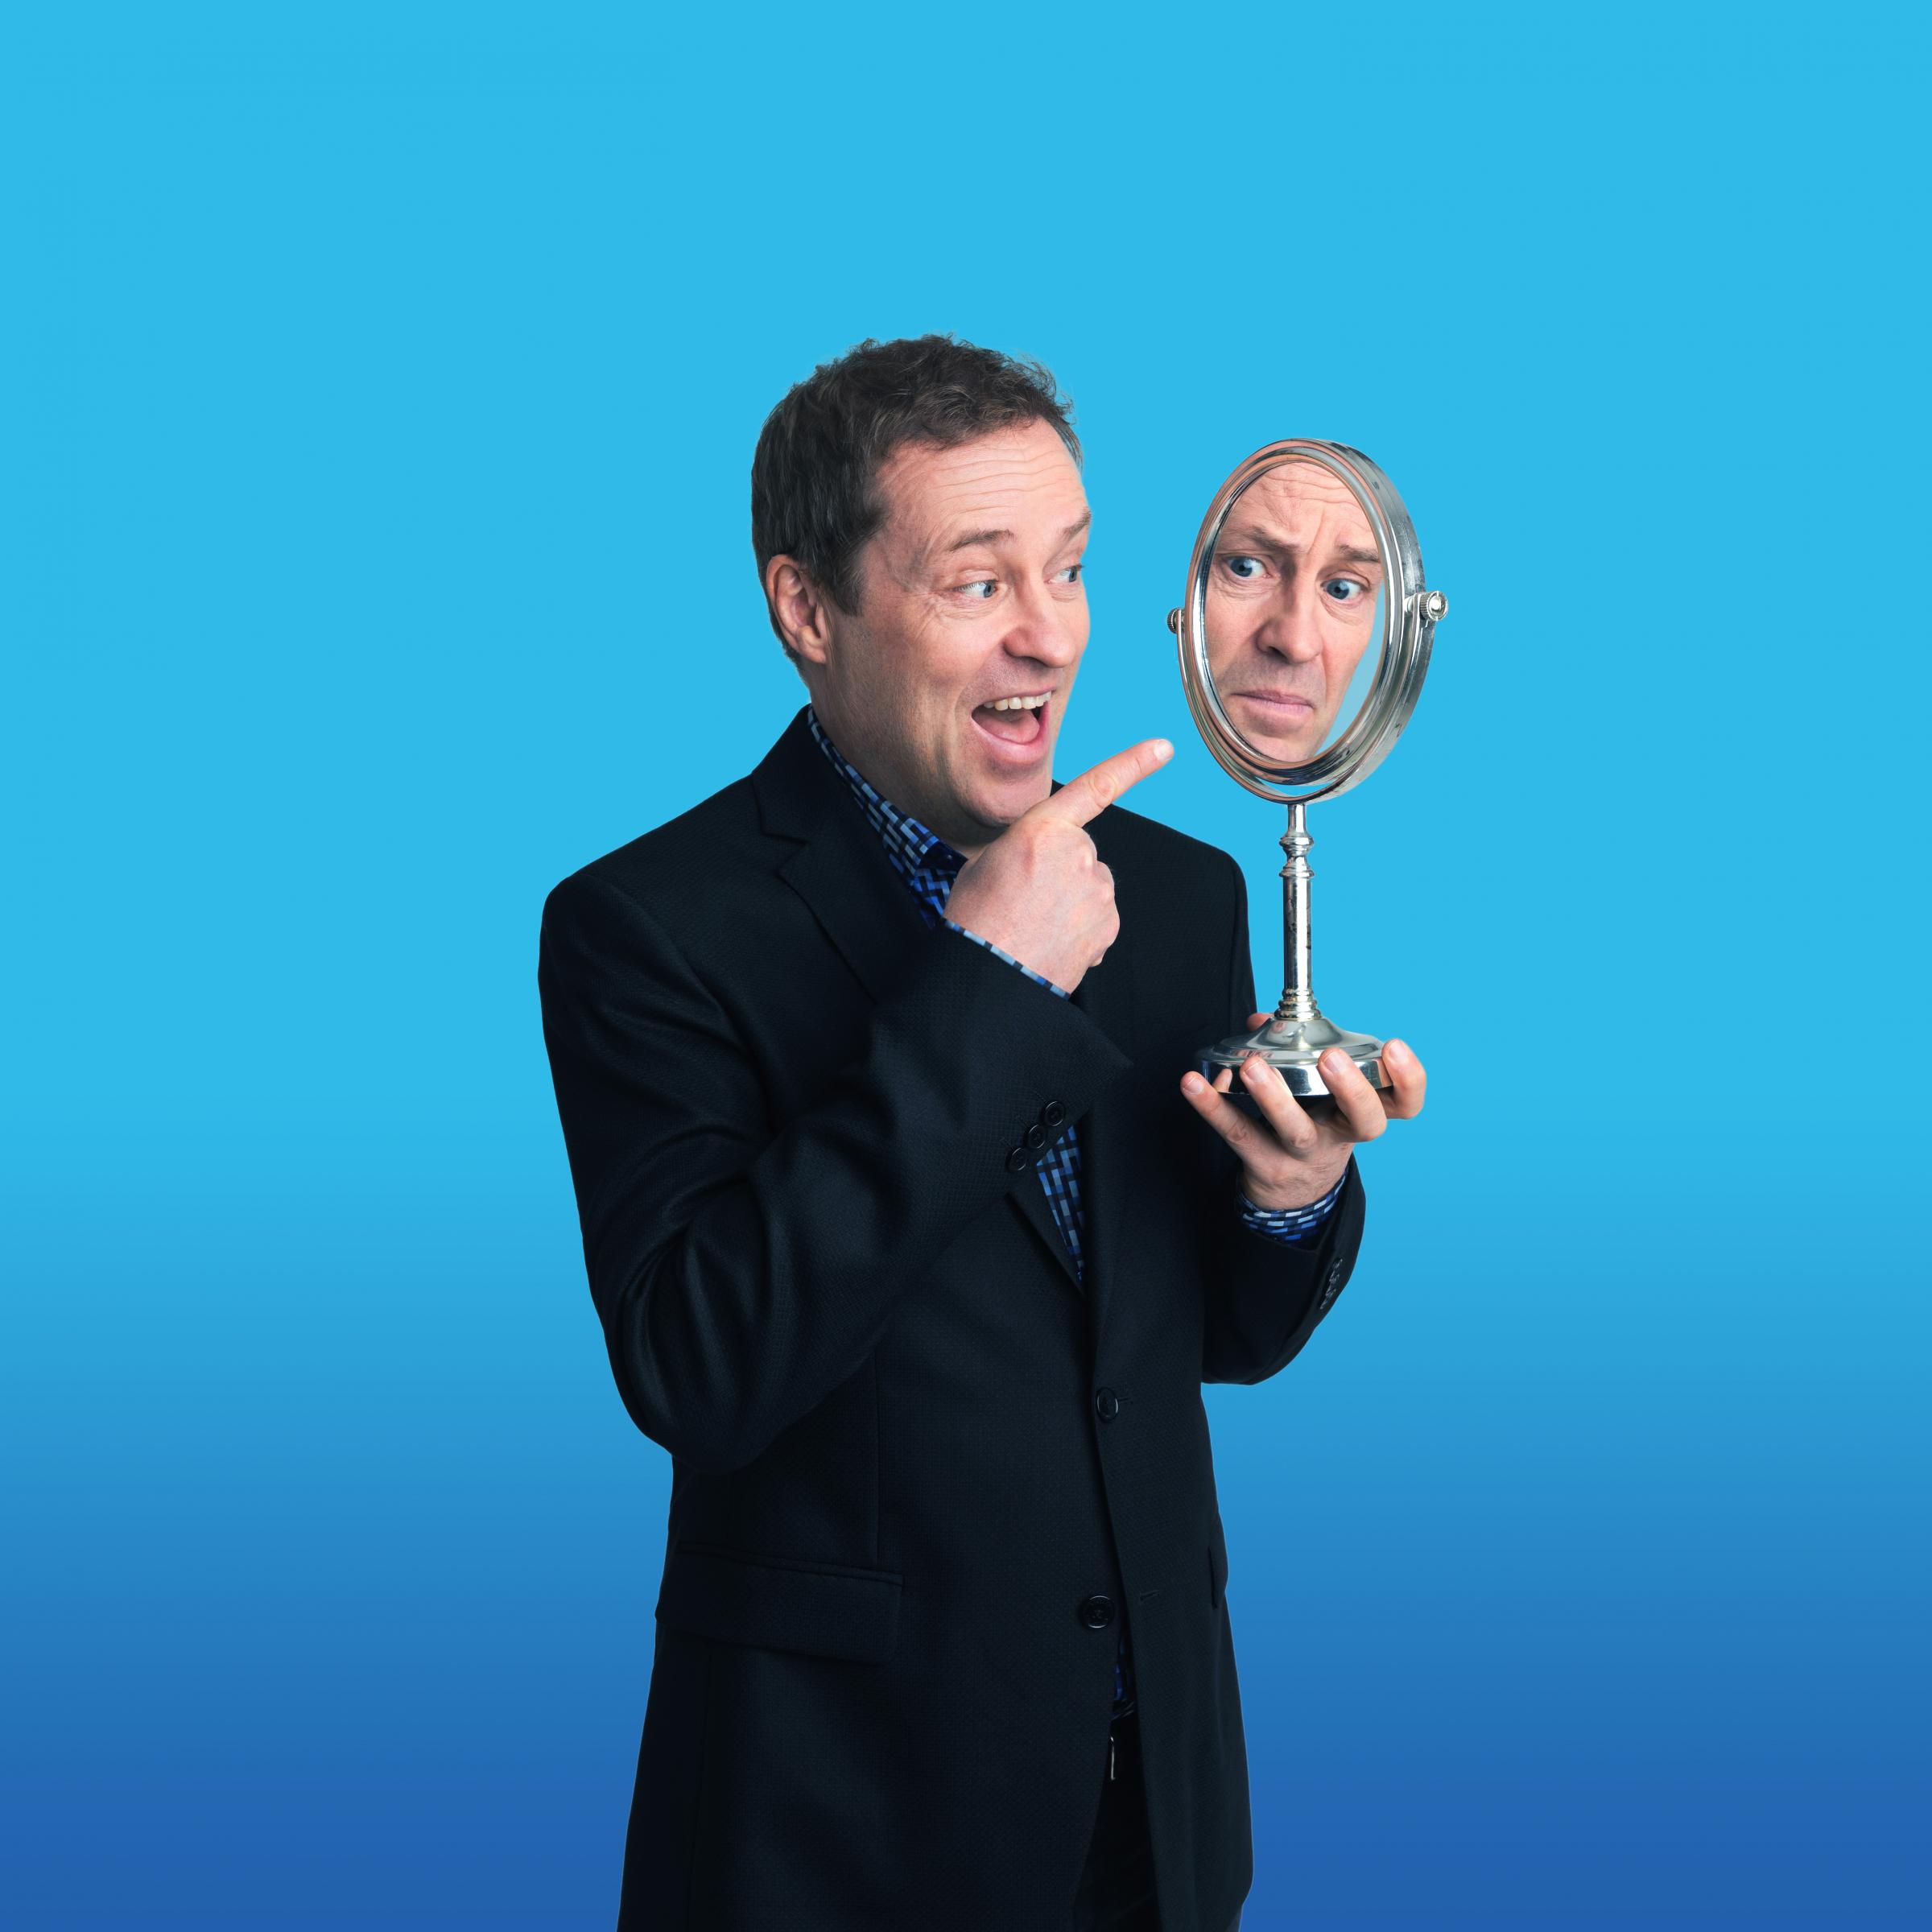 Ardal O'Hanlon is coming to the Regal Theatre, Redruth in March